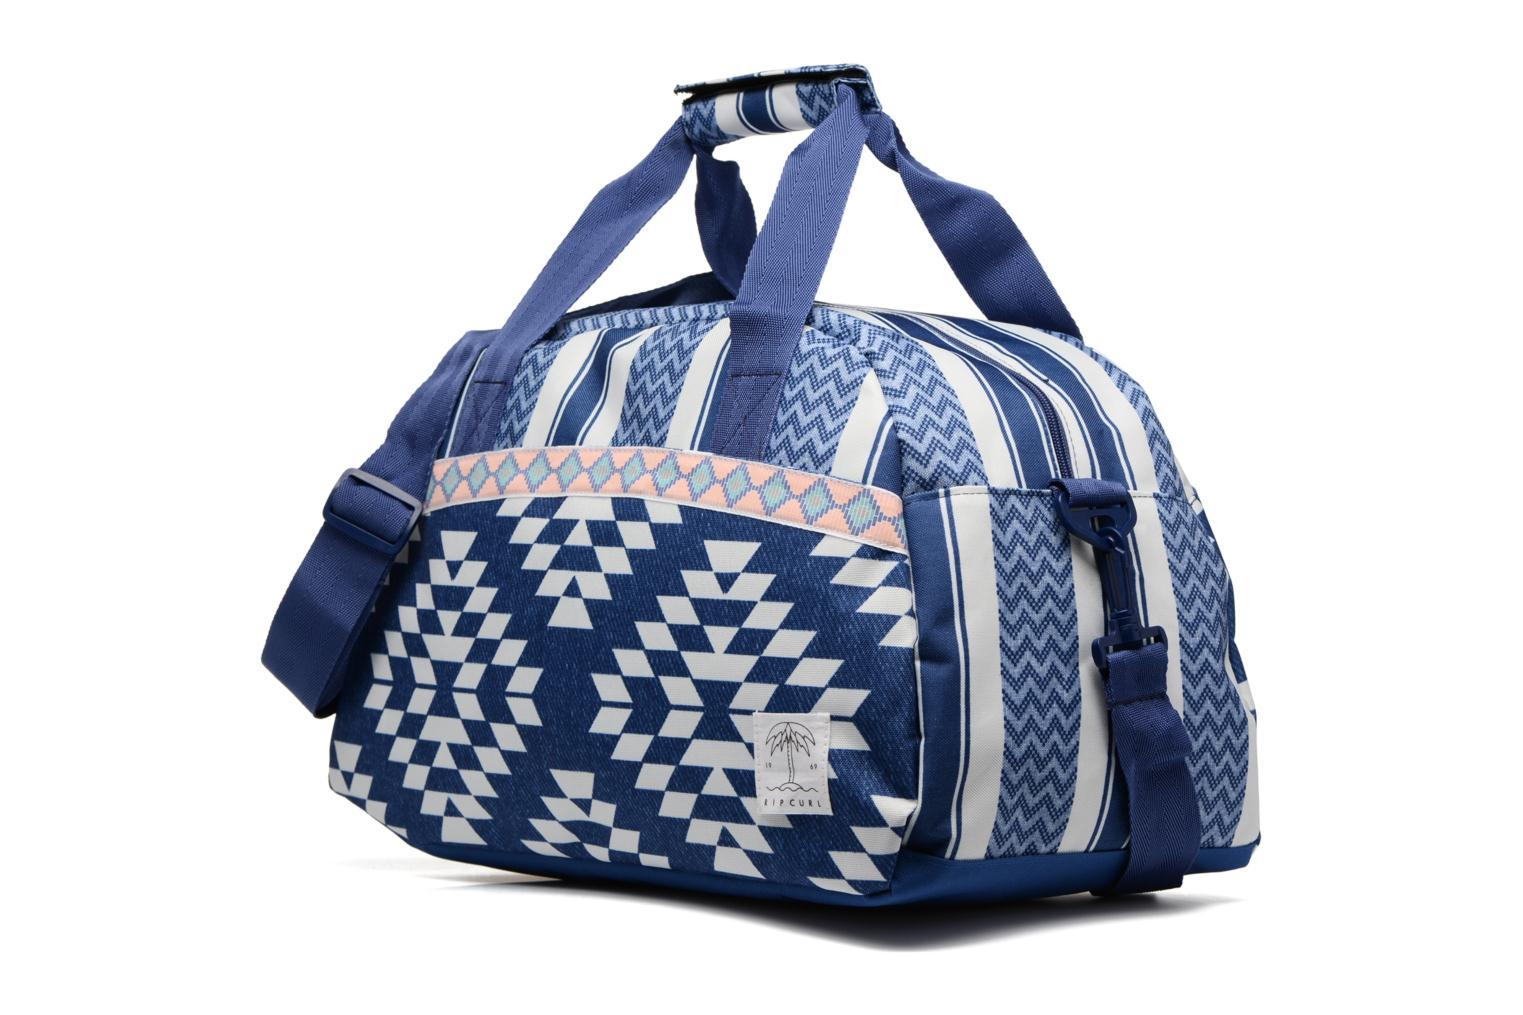 Fiesta Del Sol Gym bag Blue